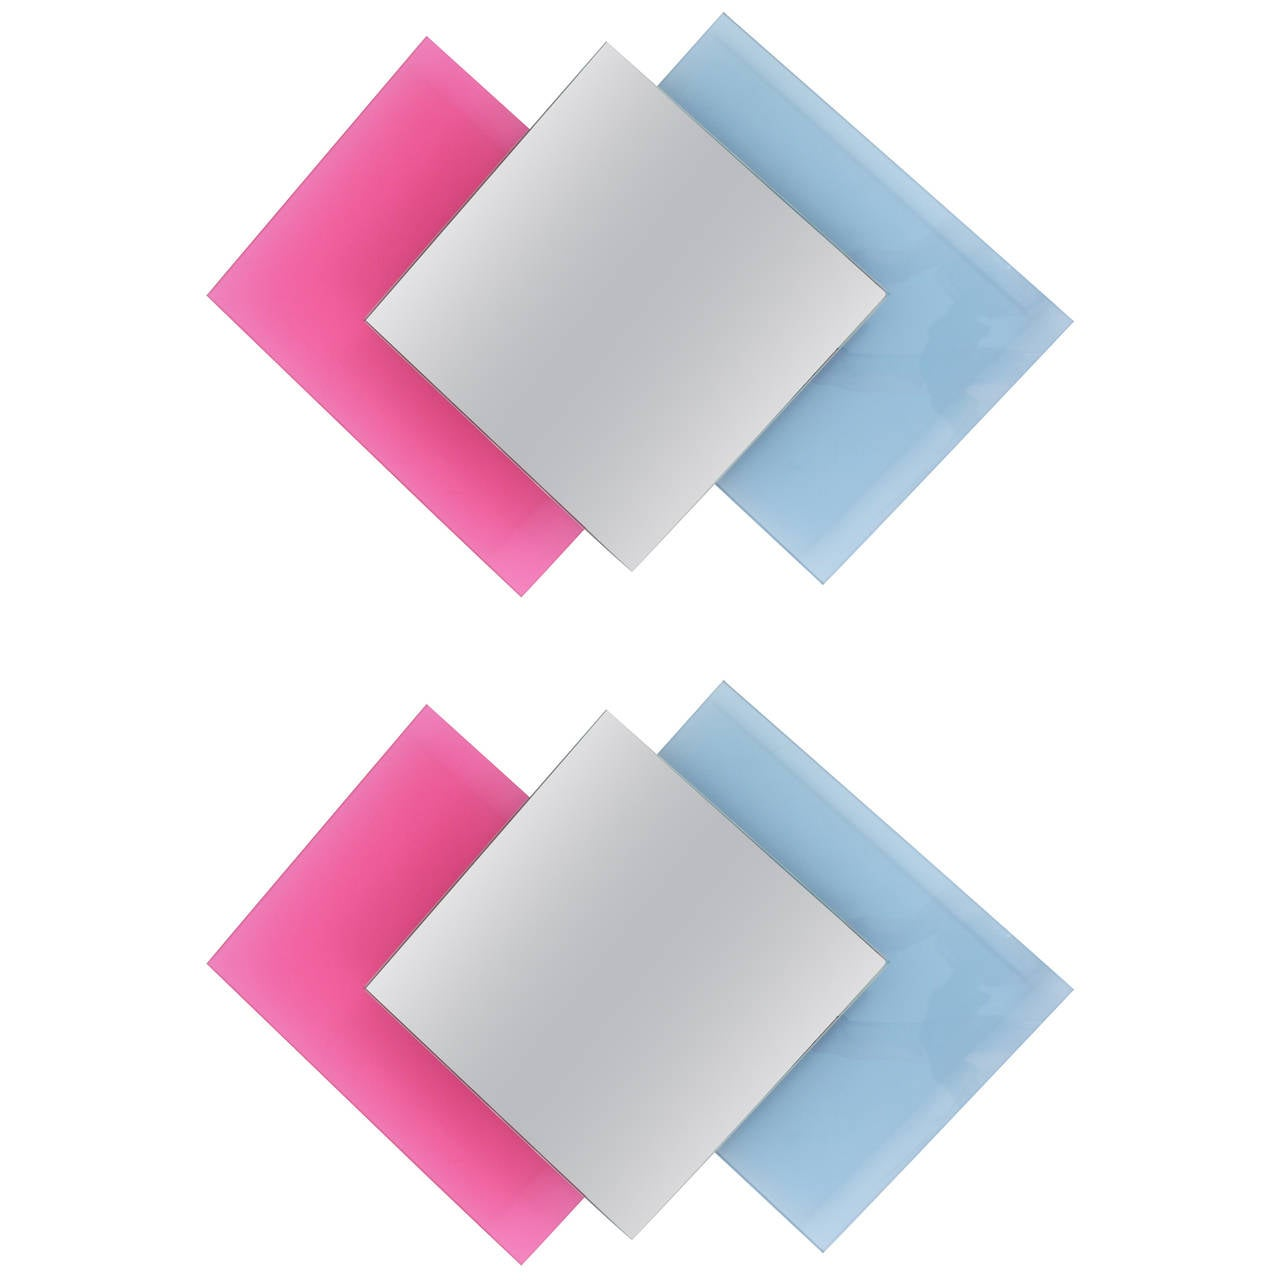 Pair of Colorful Crystal Glass Wall Mirrors, Ettore Sottsass Style, Italy, 1980s